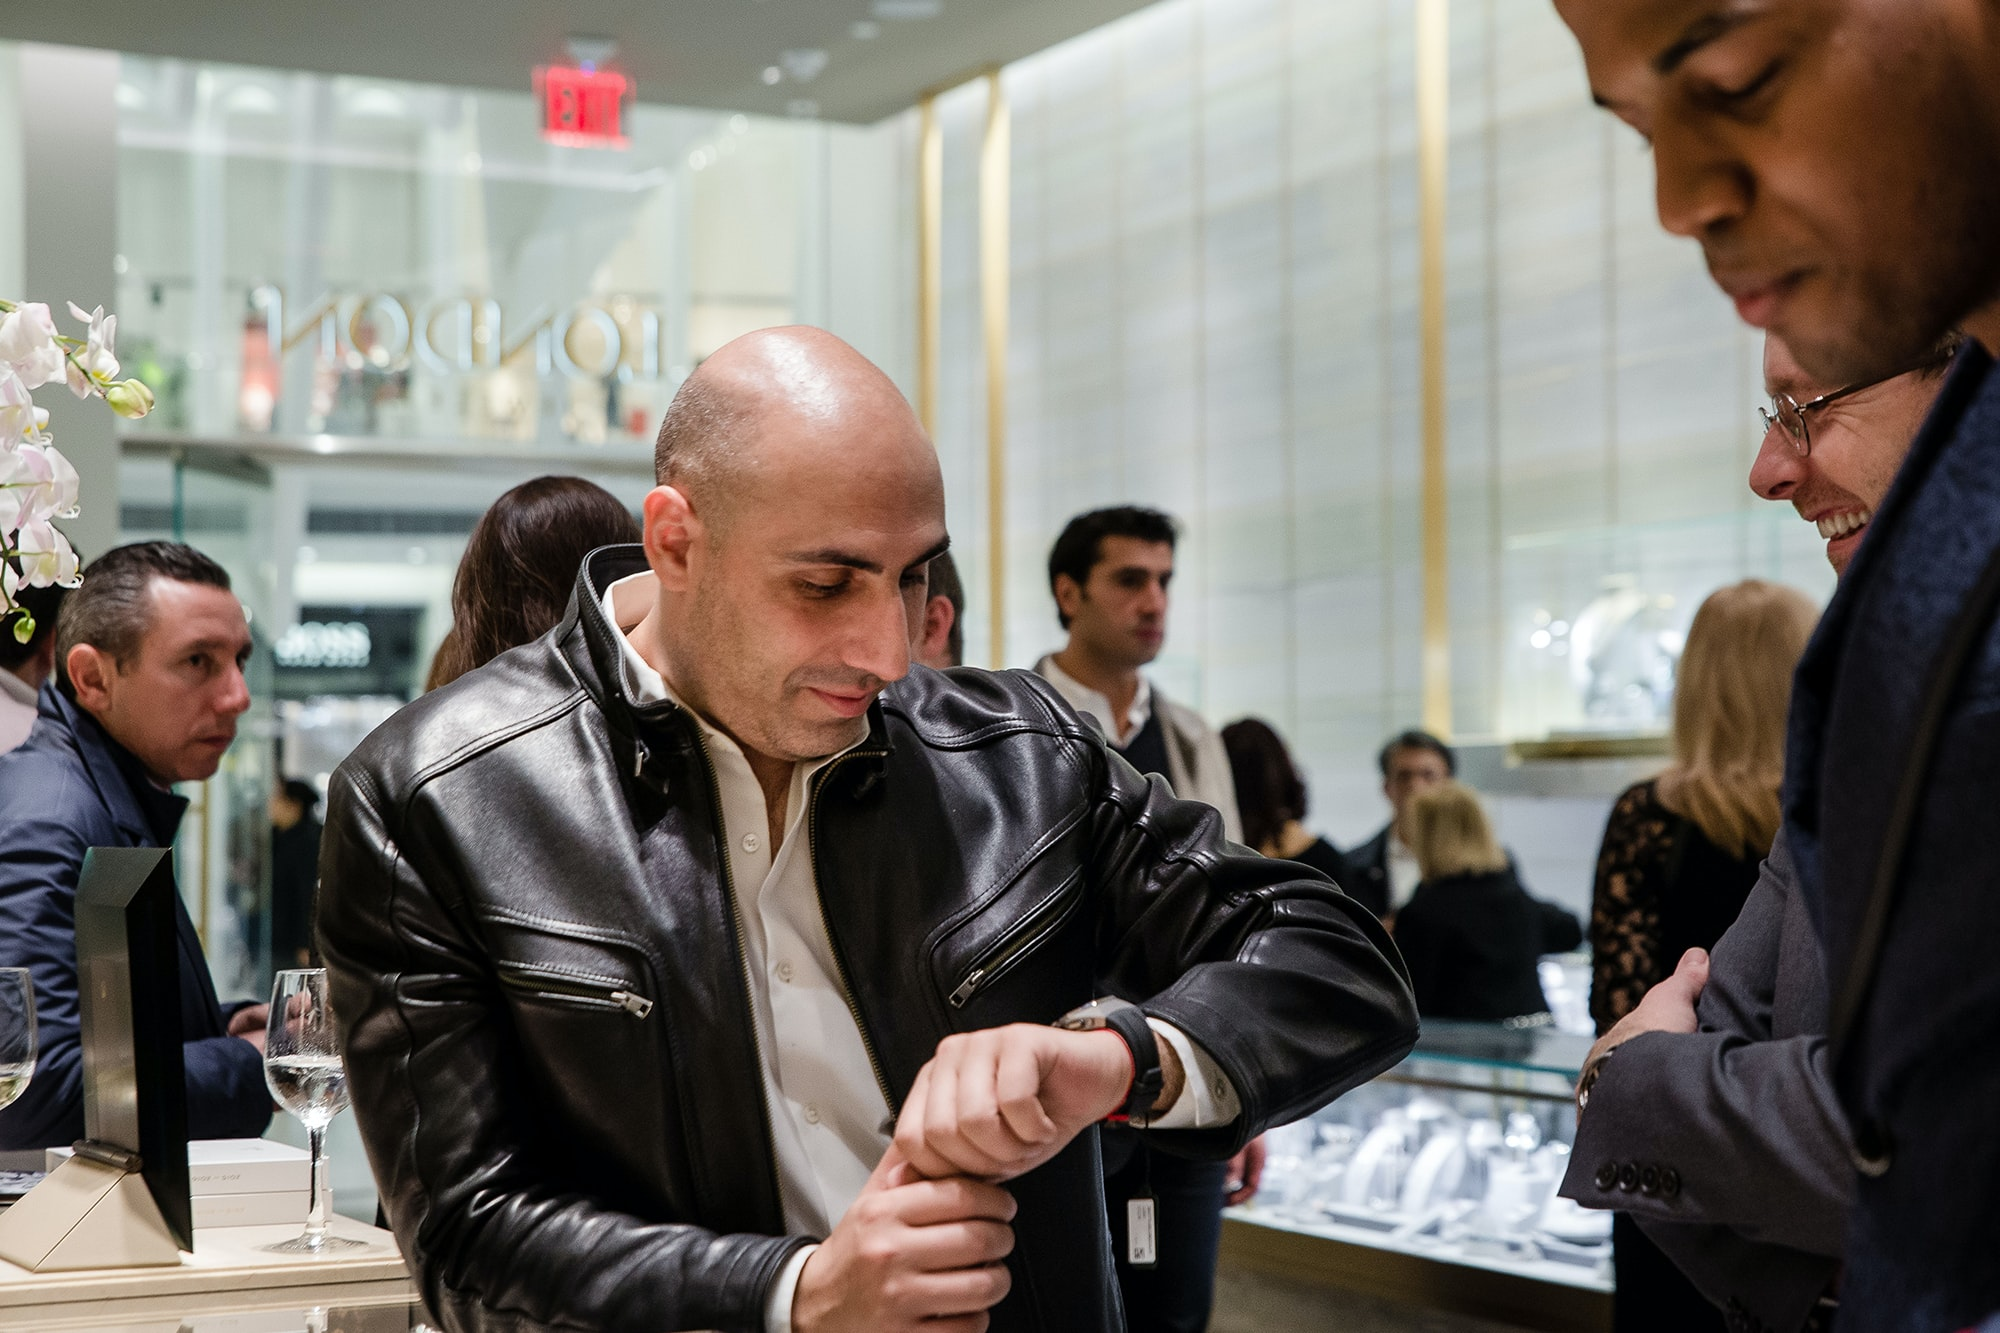 Photo Report: HODINKEE Celebrates London Jewelers' New Store In New York City's Oculus Photo Report: HODINKEE Celebrates London Jewelers' New Store In New York City's Oculus 20161109 LondonJewelersxHodinkee 126